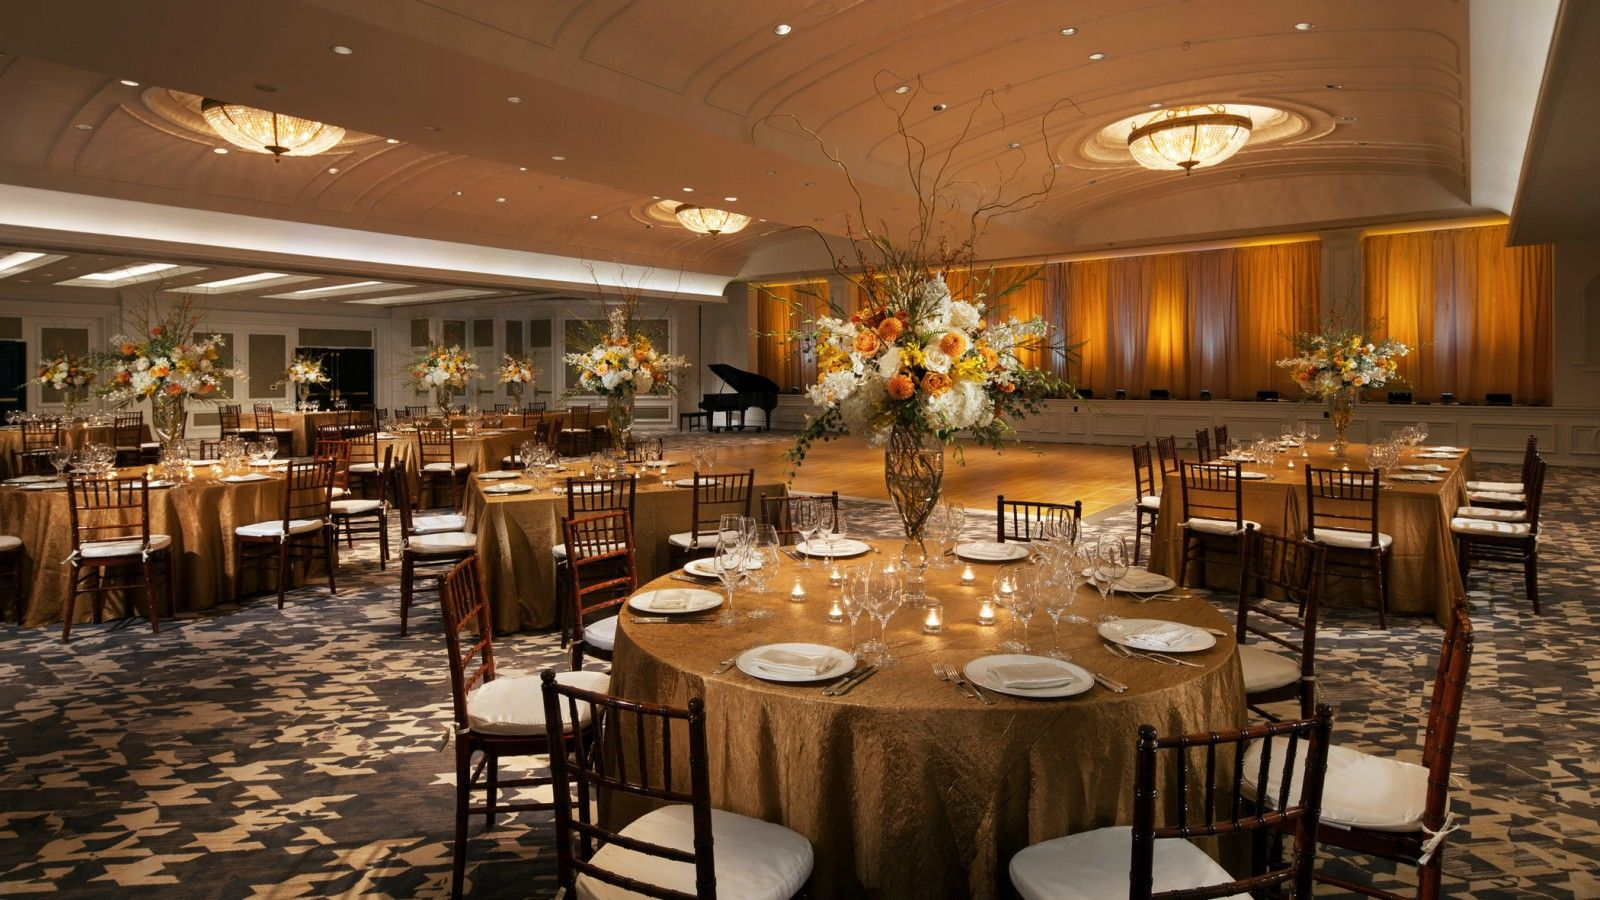 San Diego Weddings - Presidential Ballroom